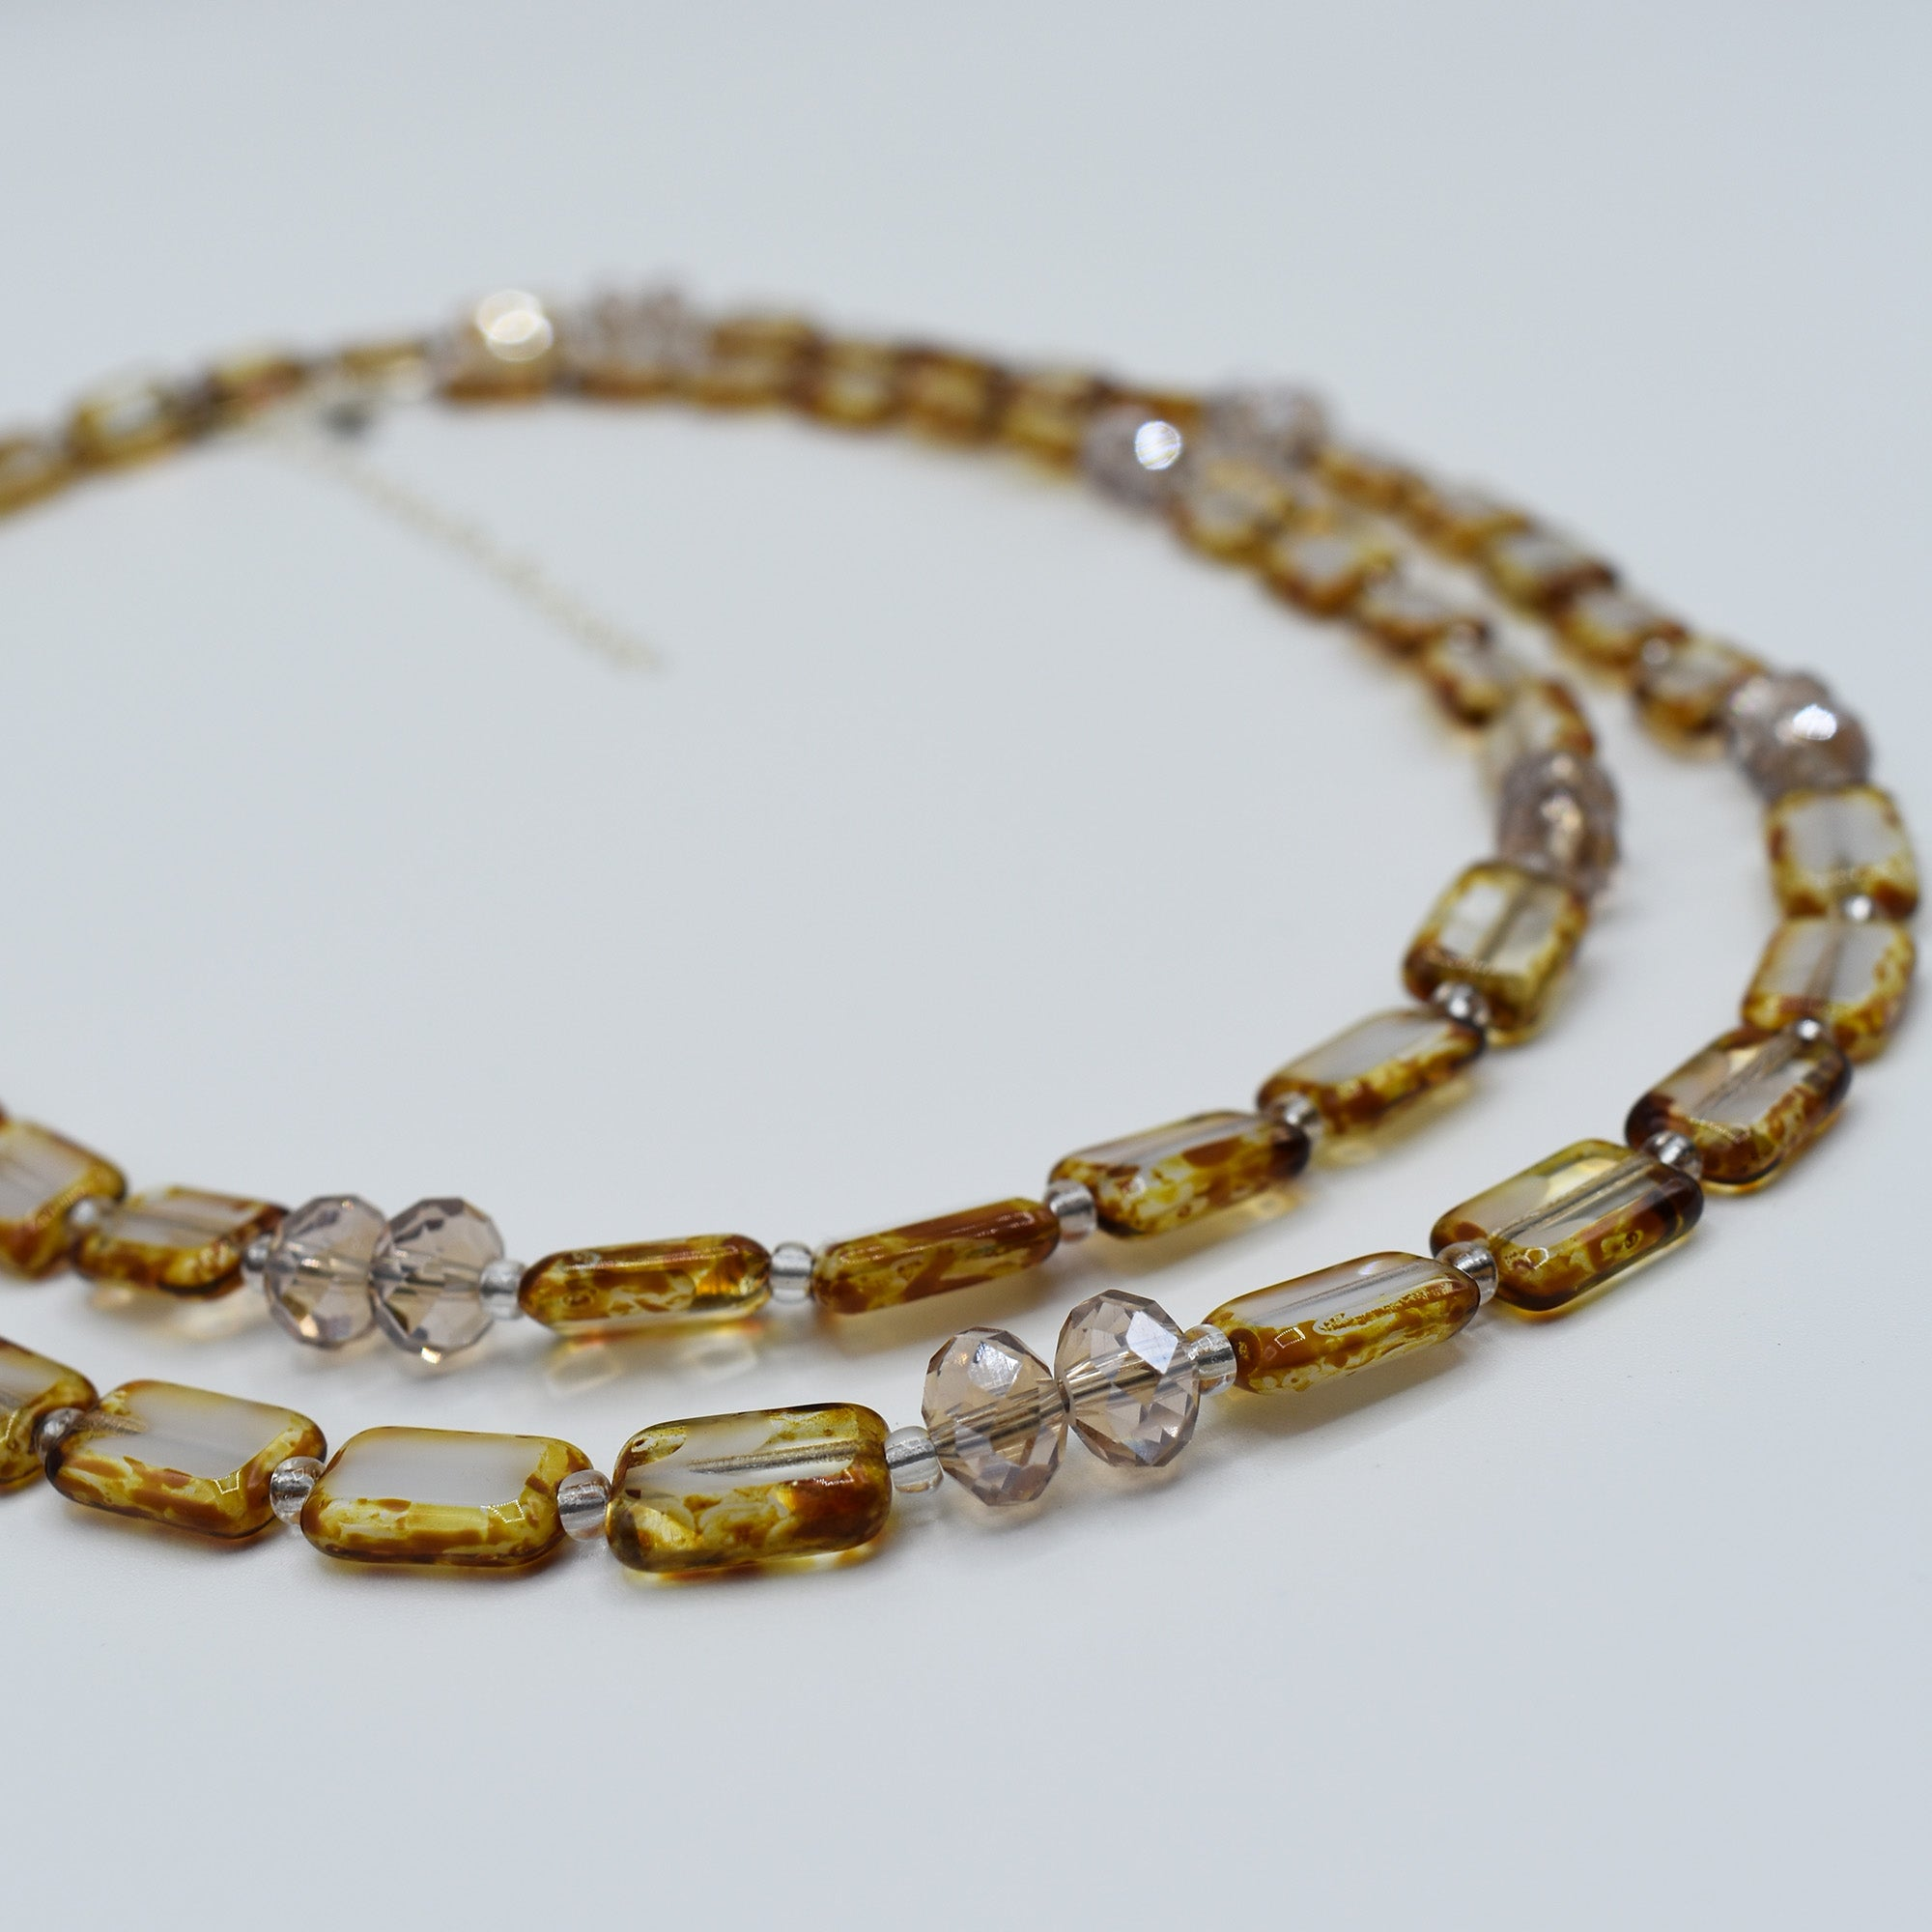 "Sparkle Crystal Wrap Necklace or Bracelet, Crystal-Trilogy, 44"", White Swirl with Champagne"